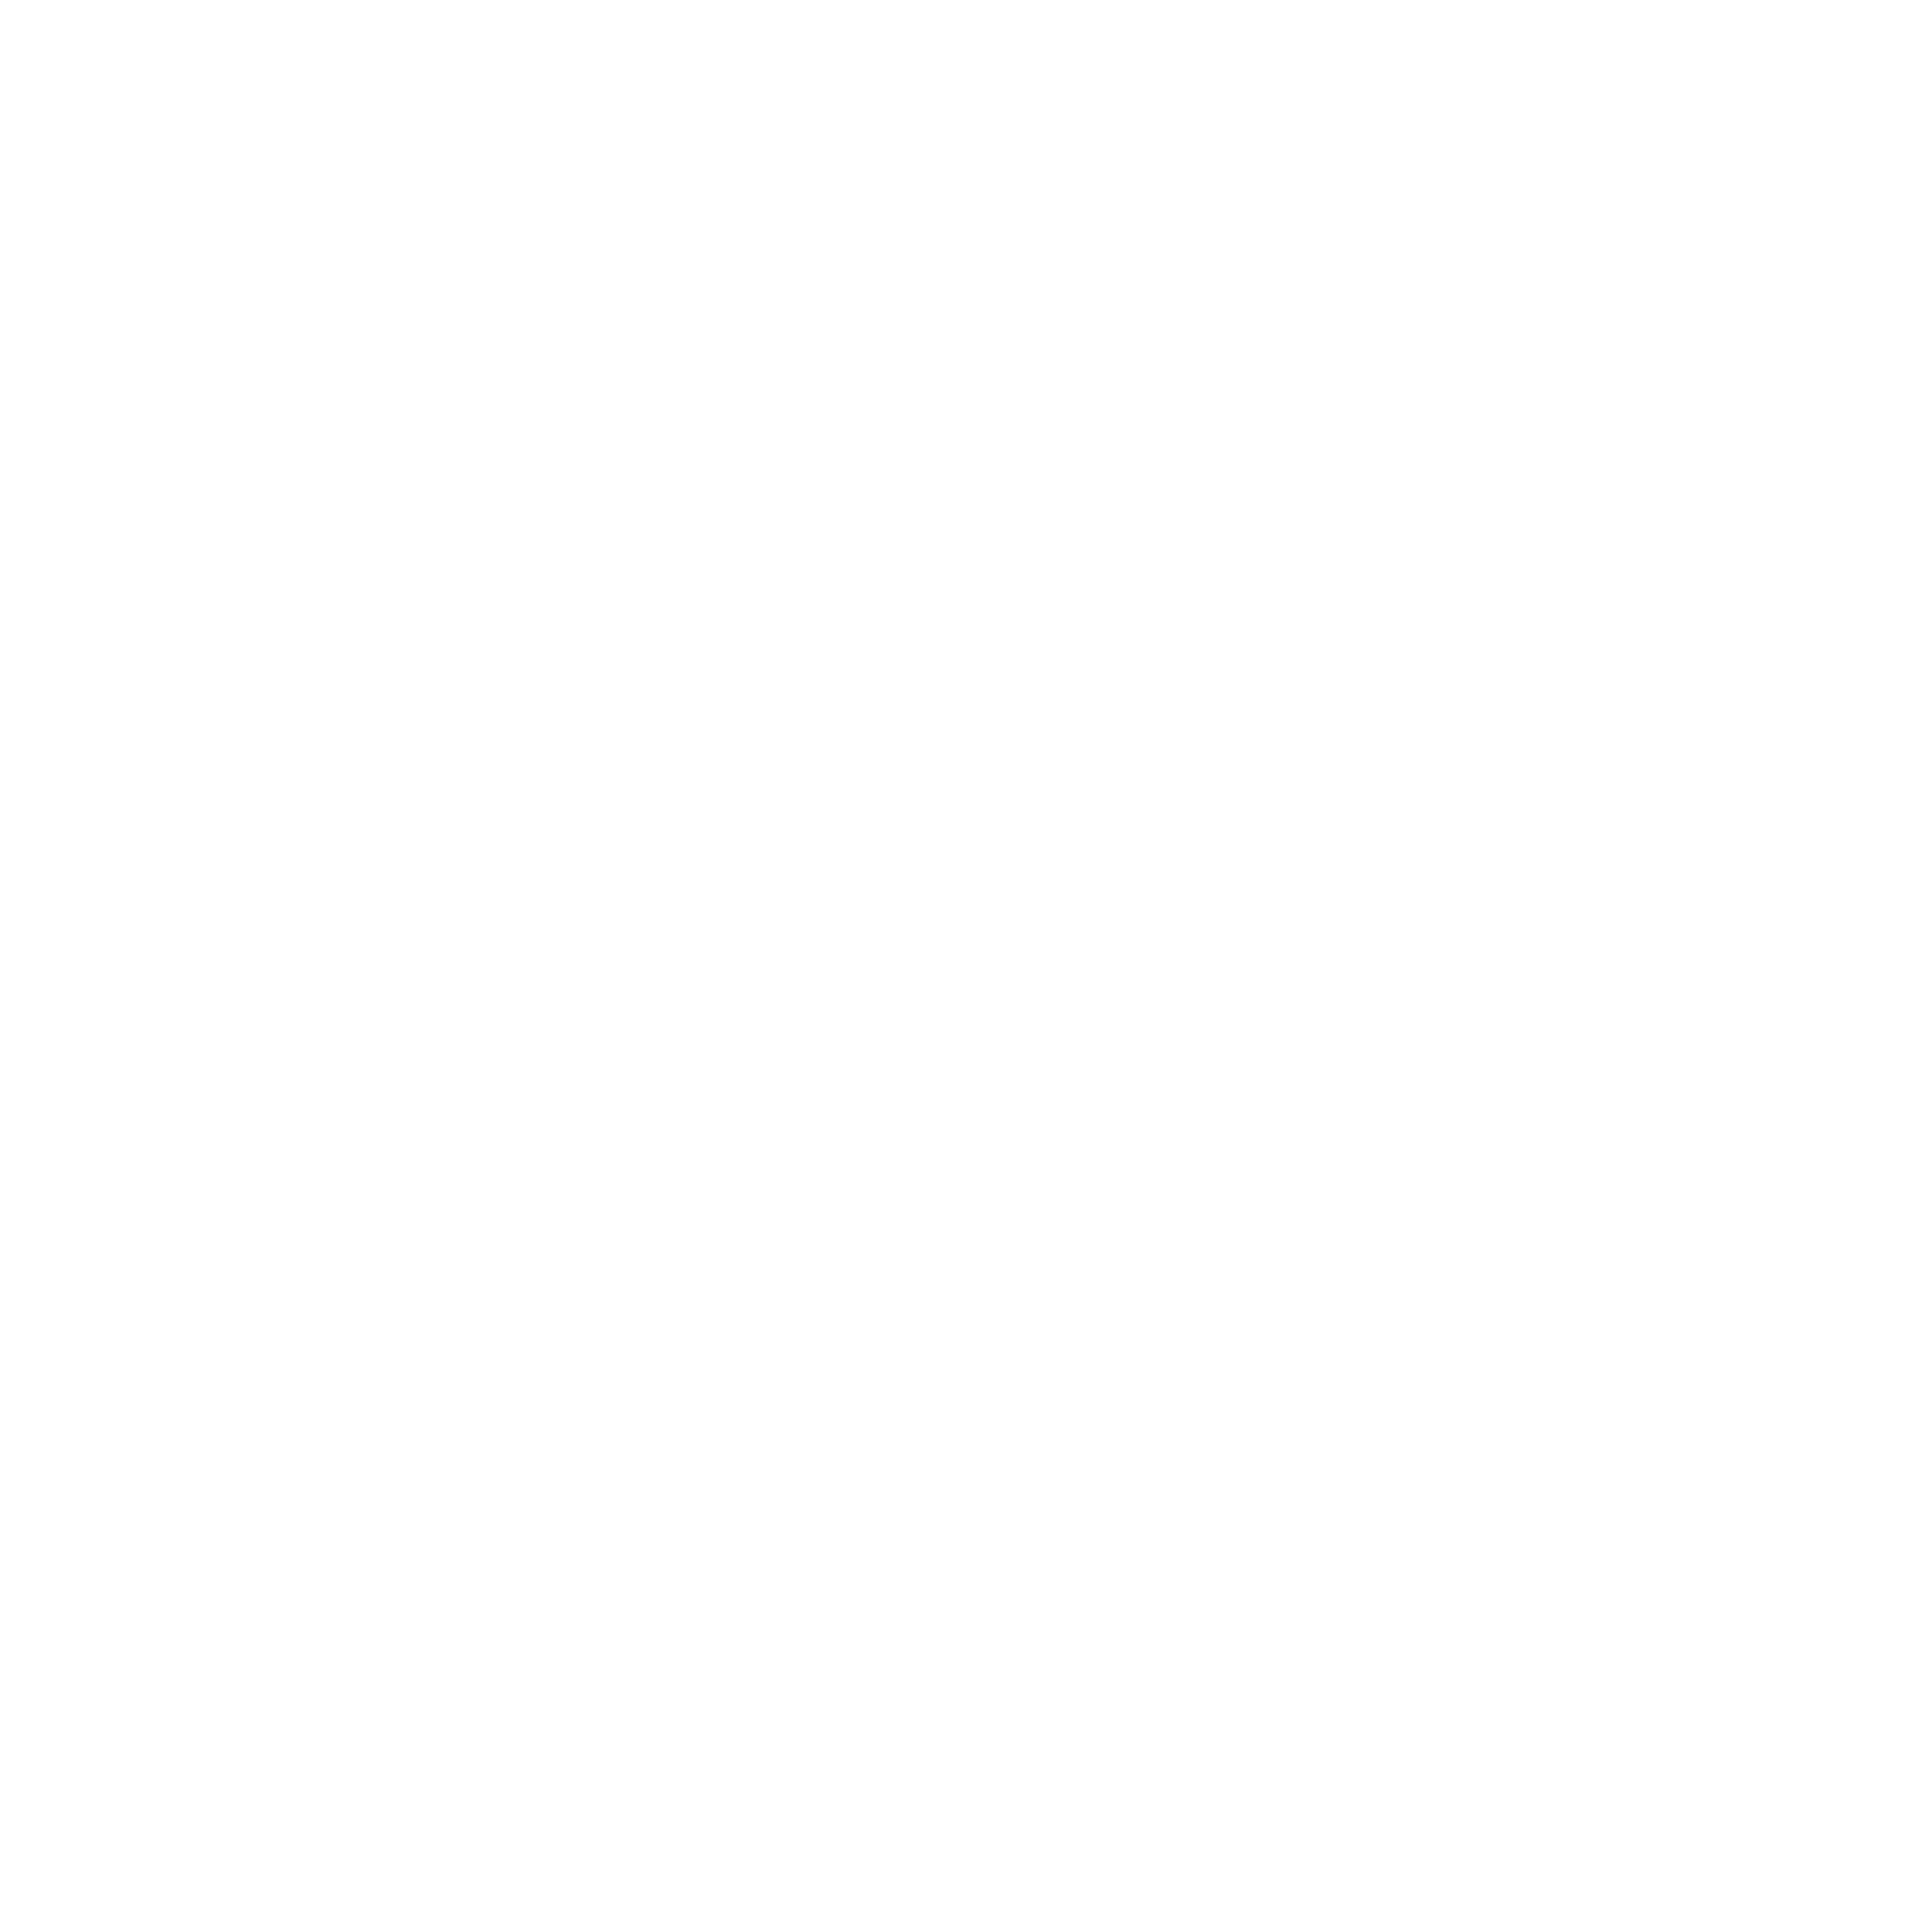 First Book_white logo.png